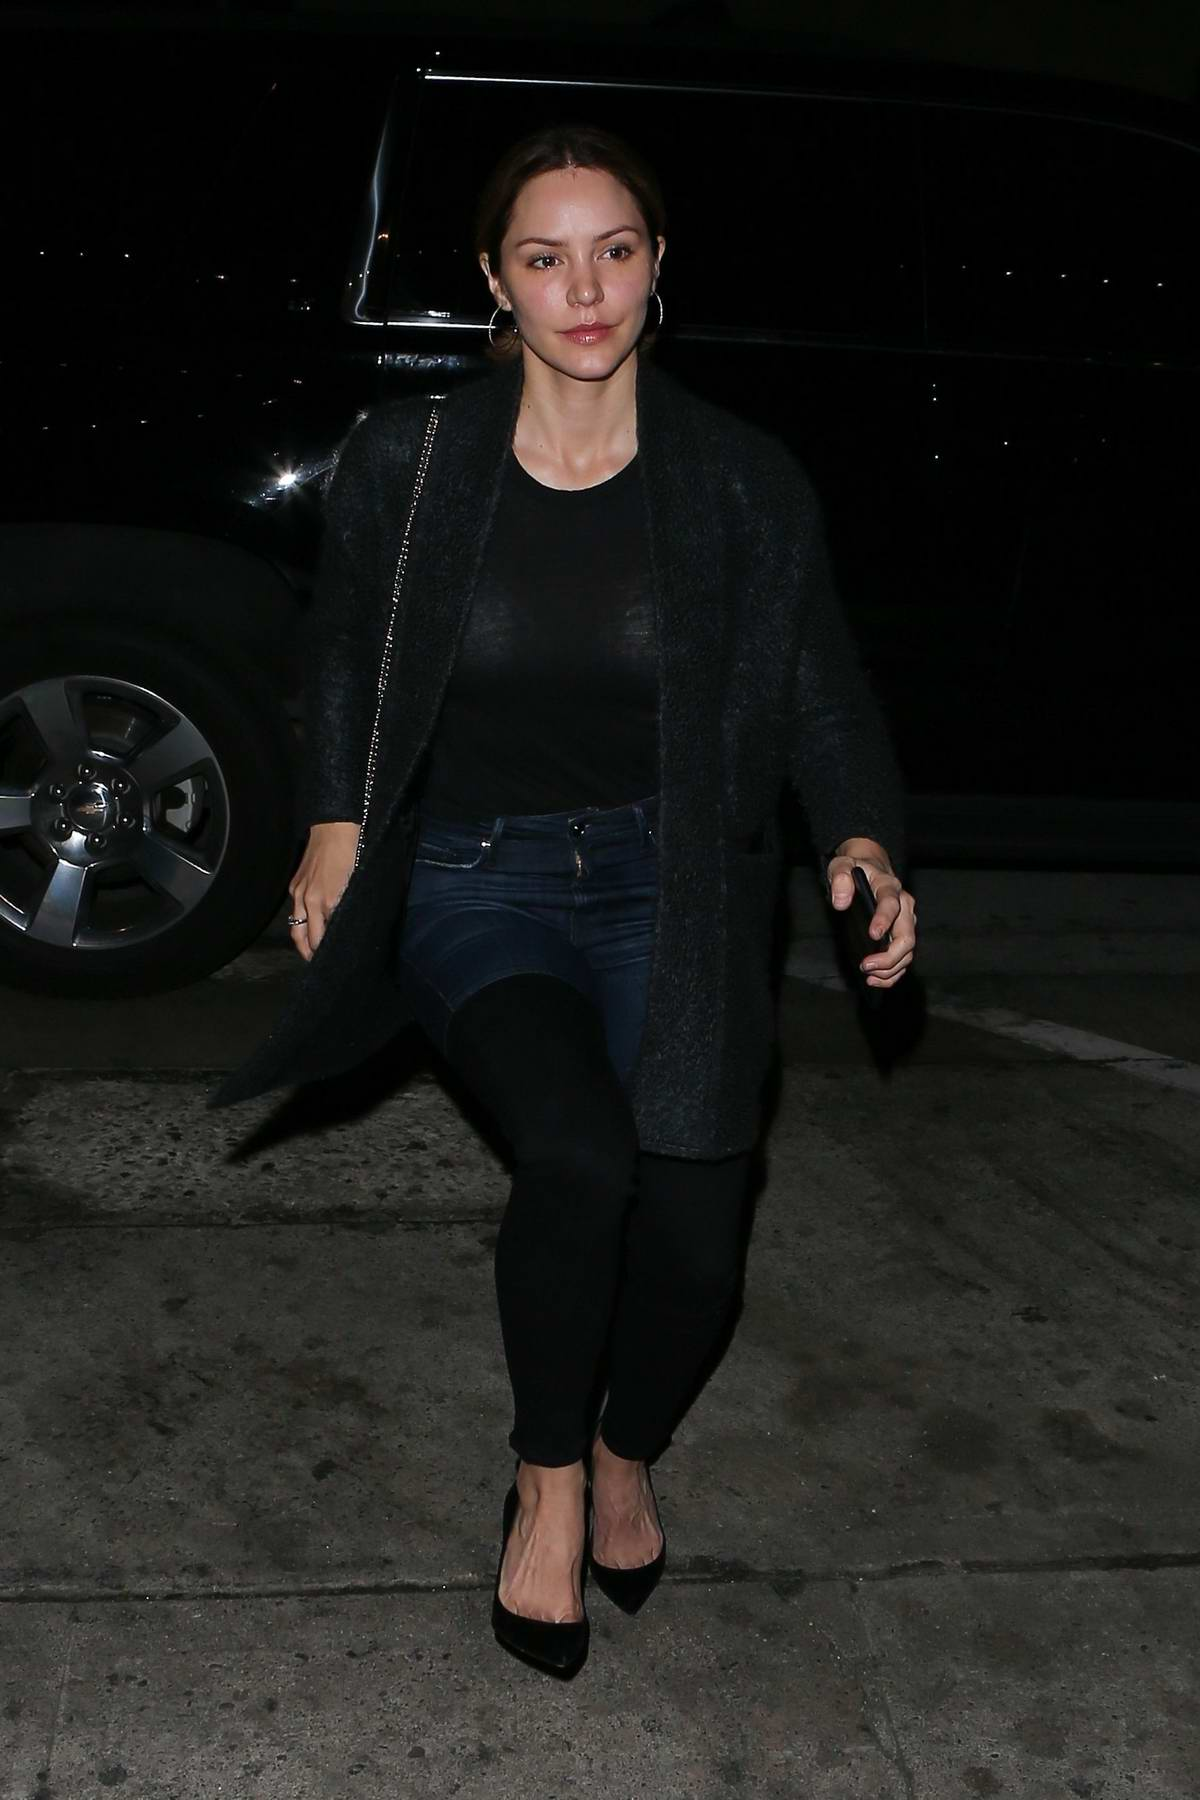 Katharine McPhee arrives for dinner at Craig's in West Hollywood, Los Angeles